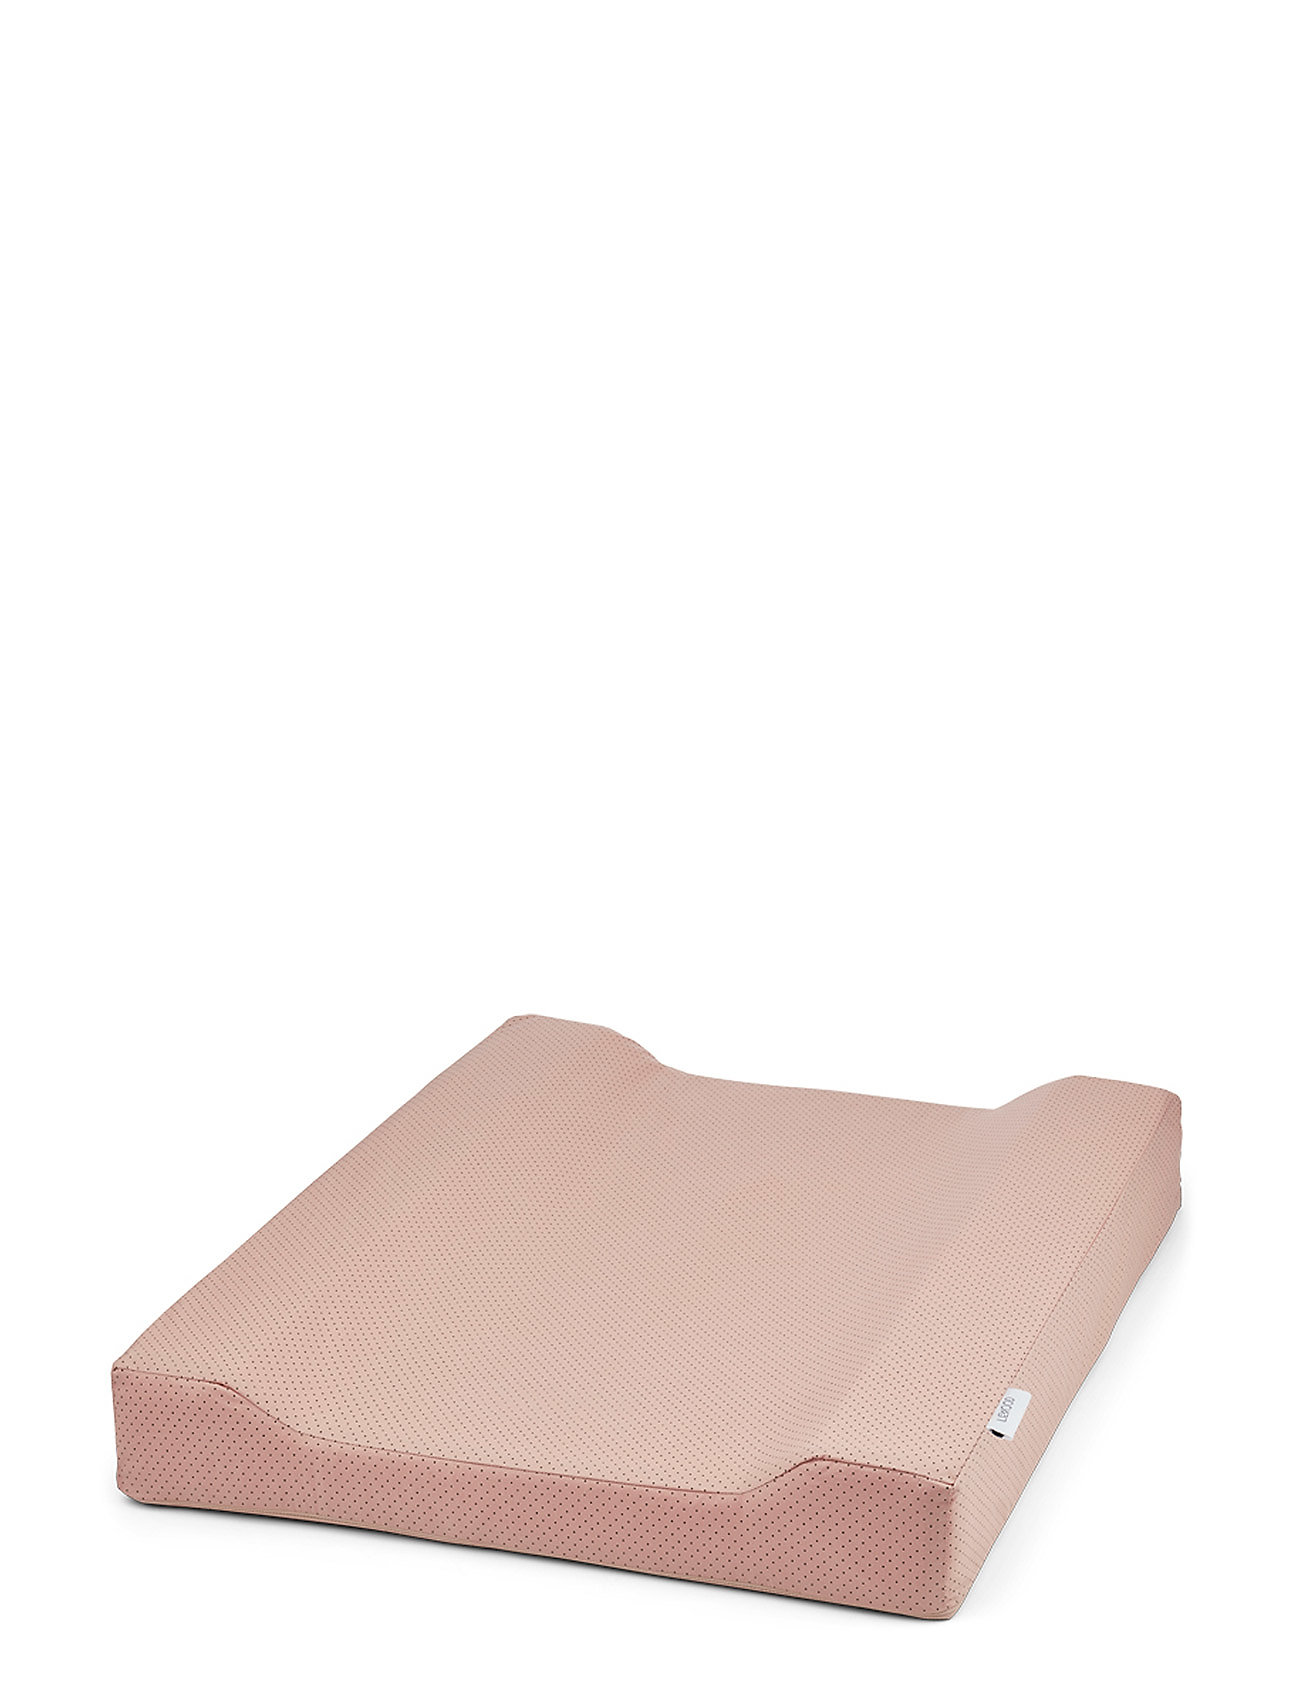 Liewood Fritz changing mat - LITTLE DOT ROSE